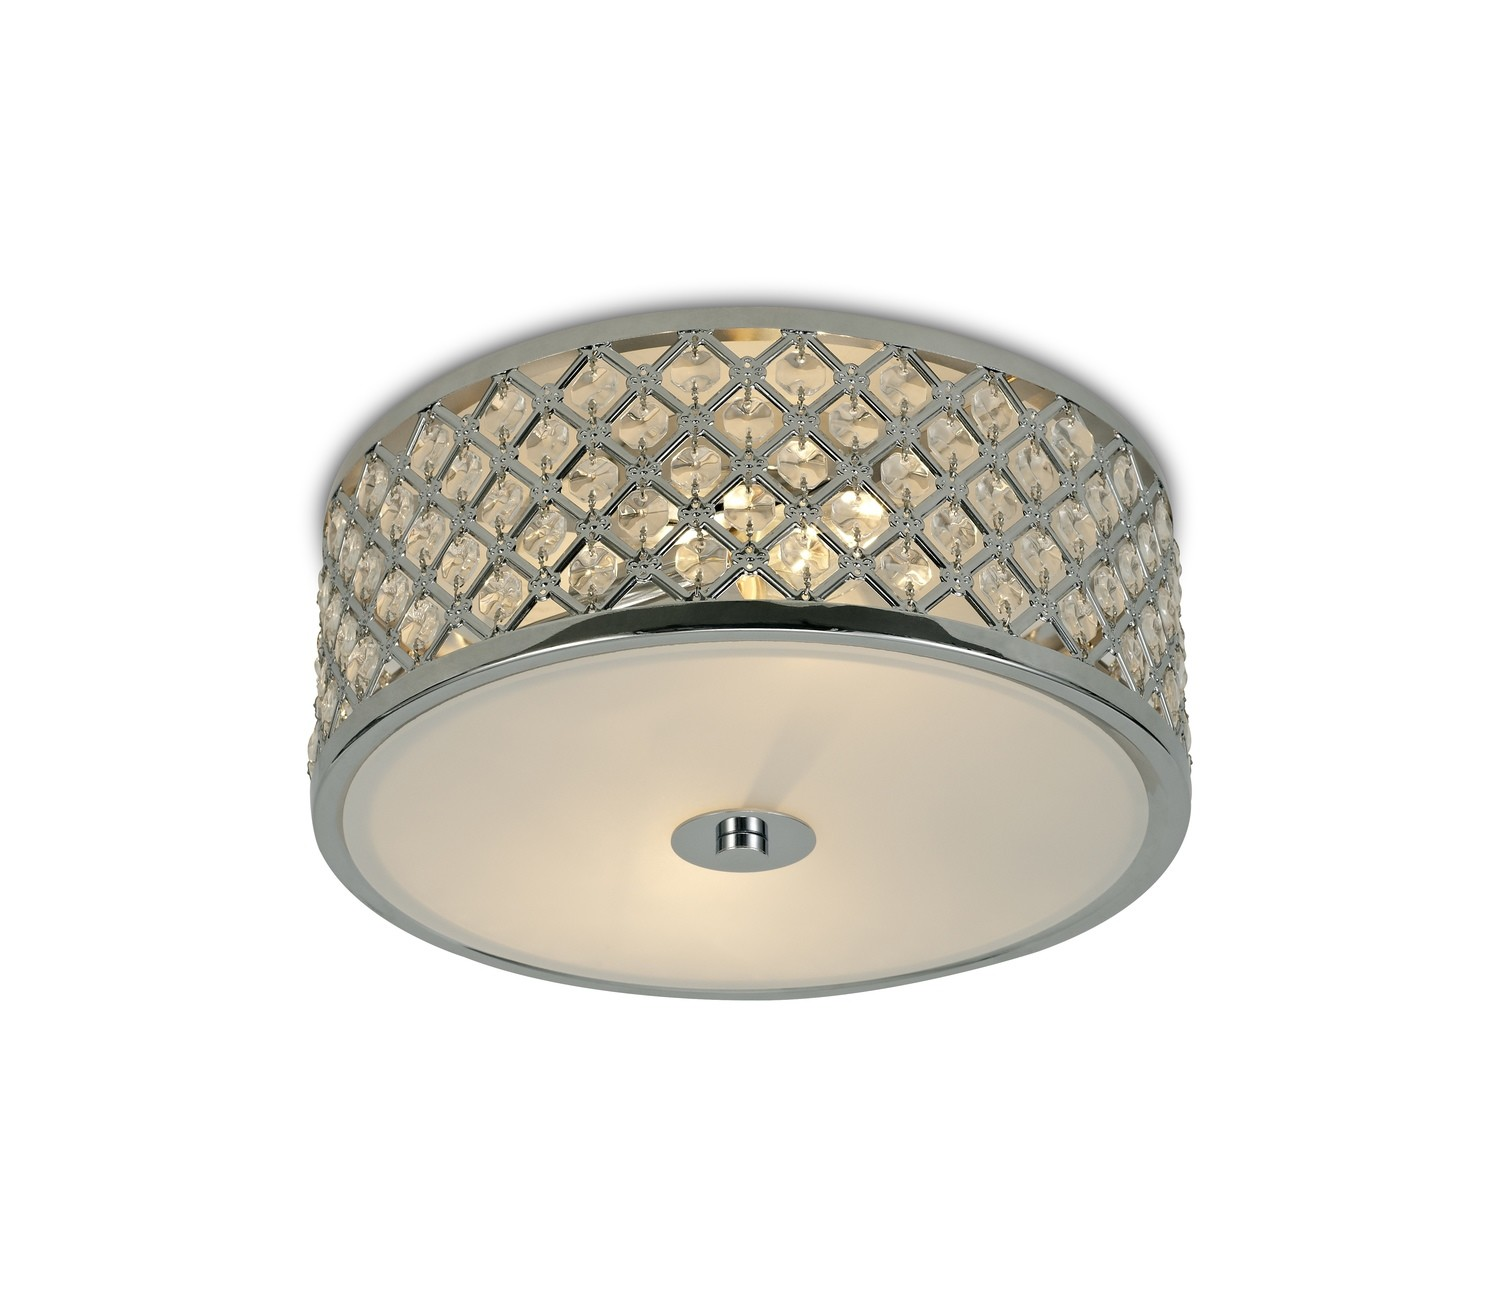 Sasha 2 Light E14, Flush Ceiling Light, 300mm Round, Polished Chrome With Crystal Glass And Opal Glass Diffuser